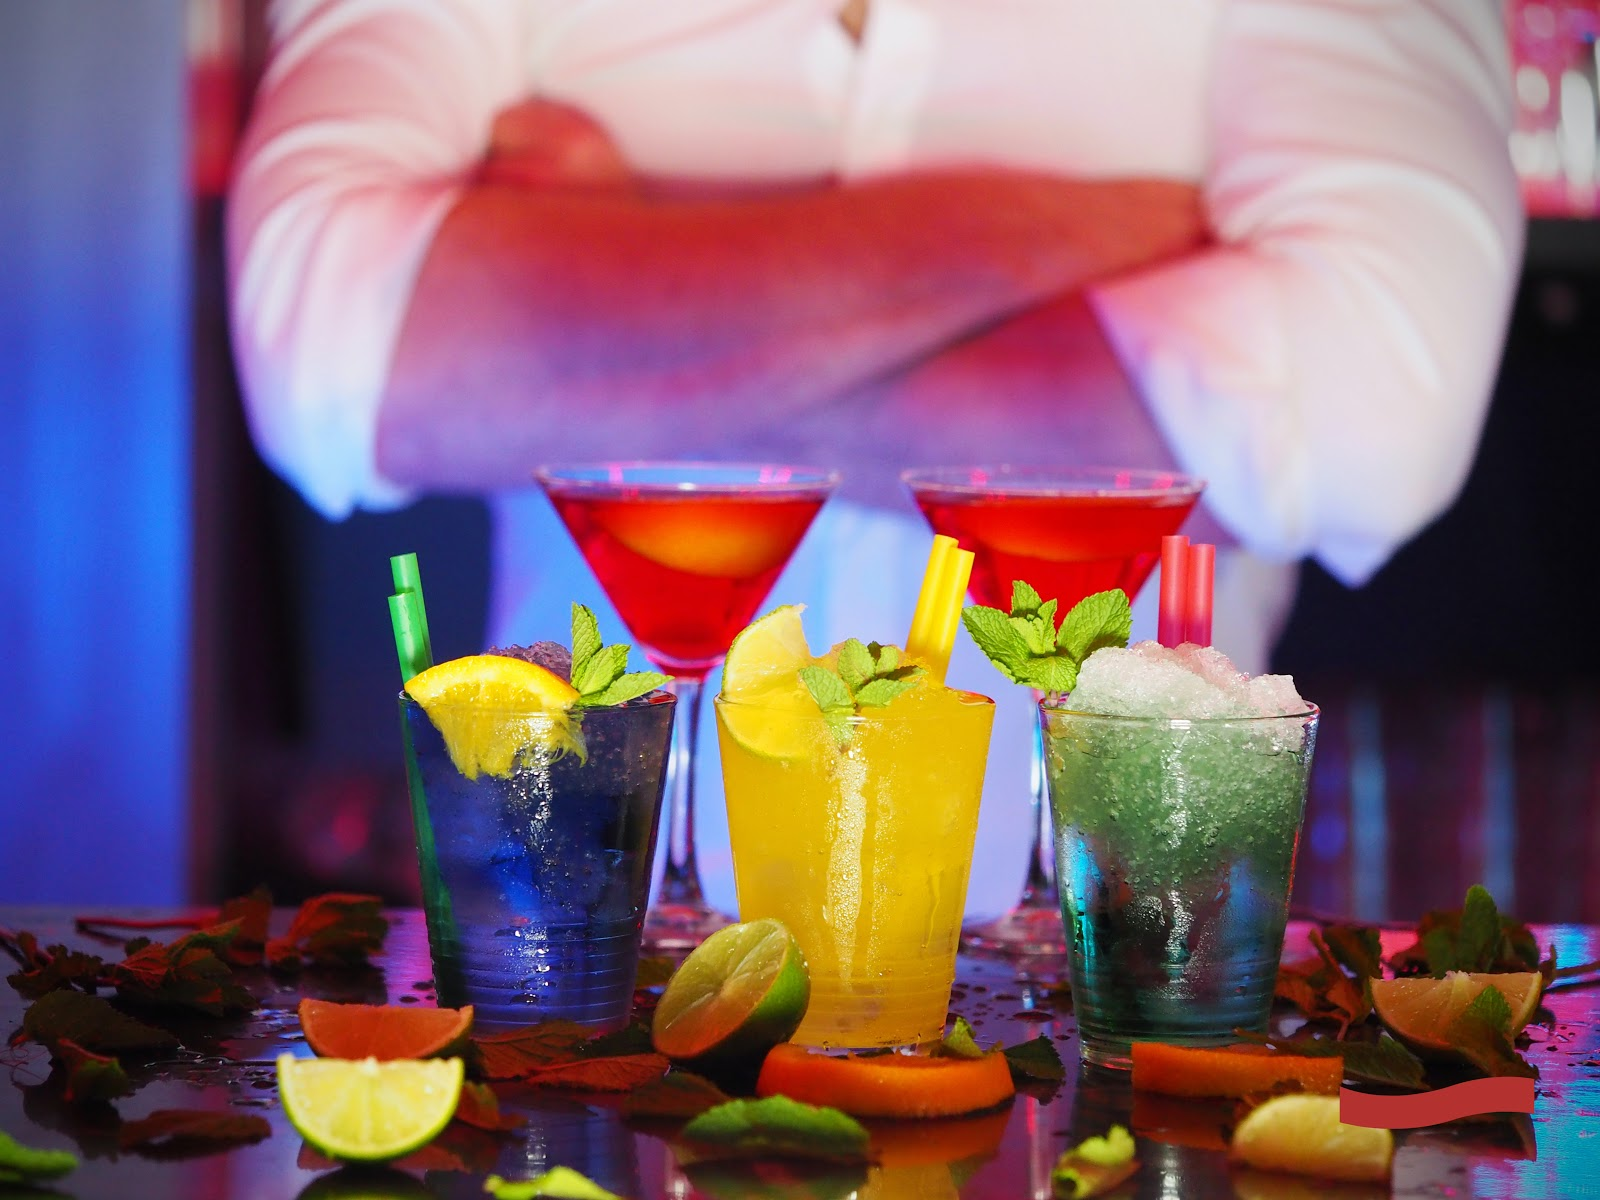 Photo of alcoholic drinks on a bar